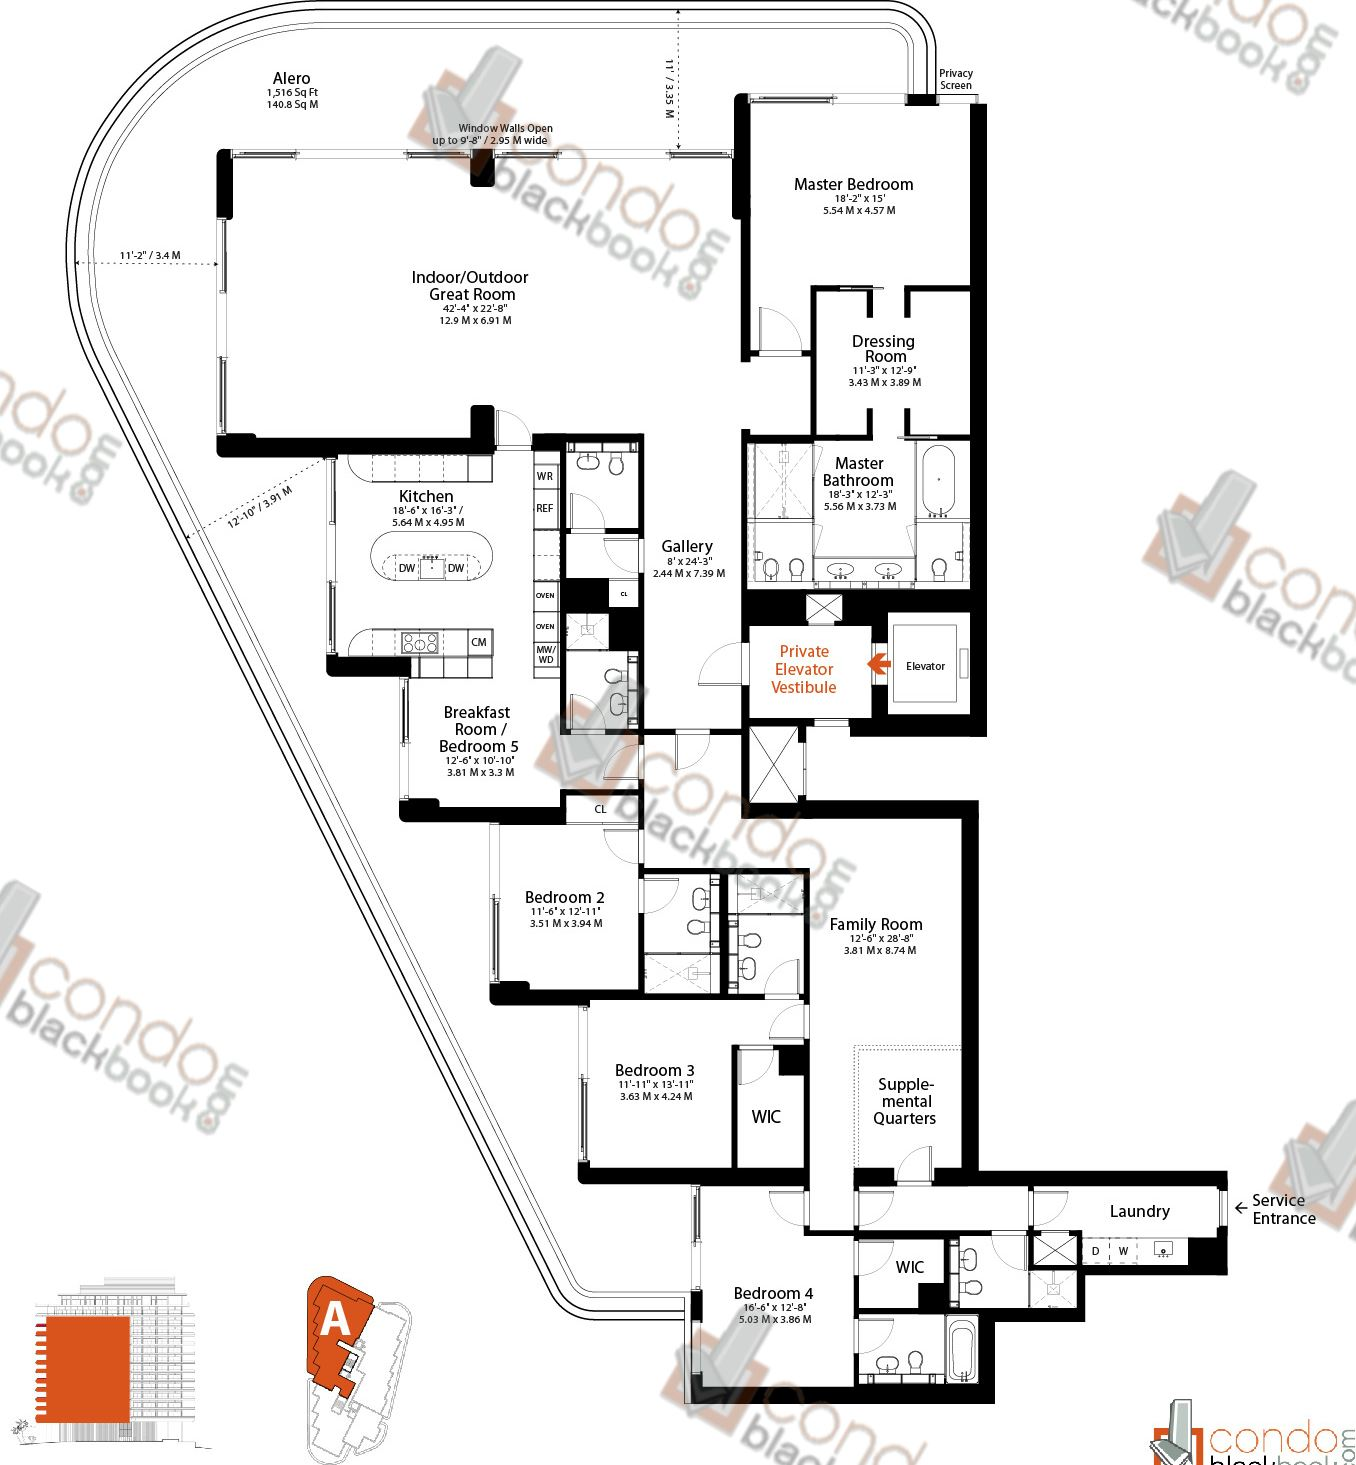 Faena miami beach house floor plans faena versailles miami for Miami mansion floor plans